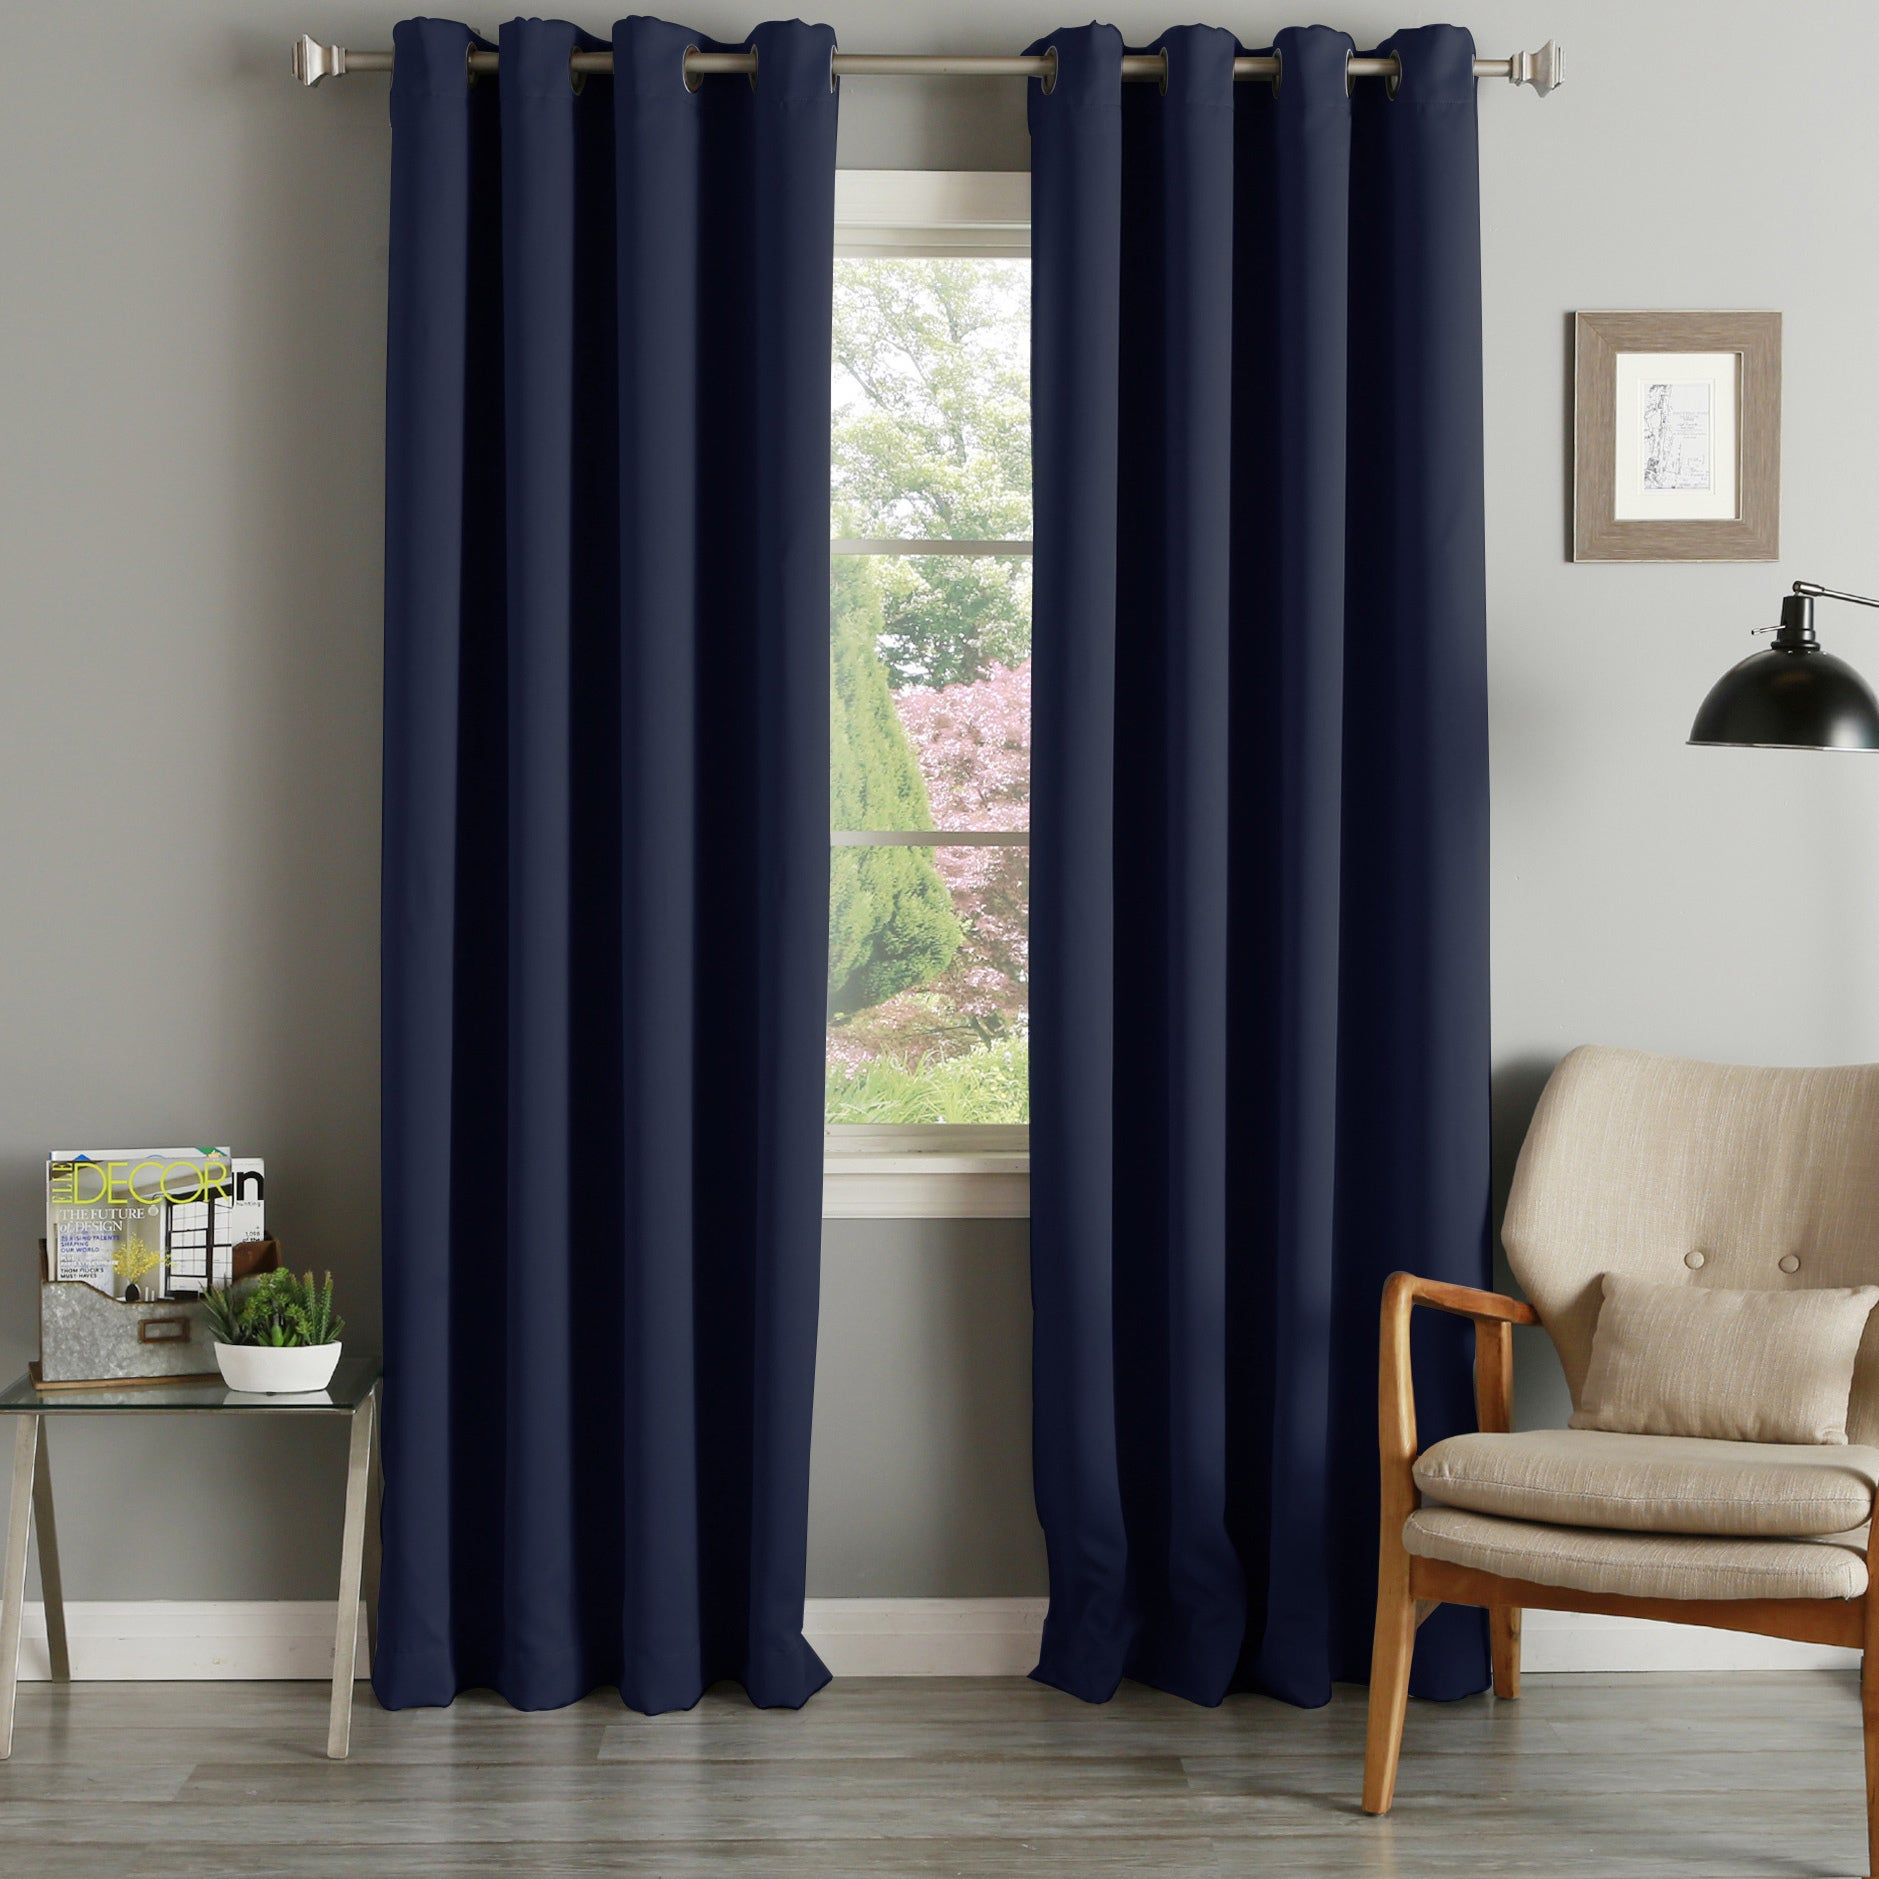 Aurora Home Grommet Top Thermal Insulated 96 Inch Blackout Curtain Panel Pair – 52 X 96 Intended For Grommet Top Thermal Insulated Blackout Curtain Panel Pairs (View 5 of 20)